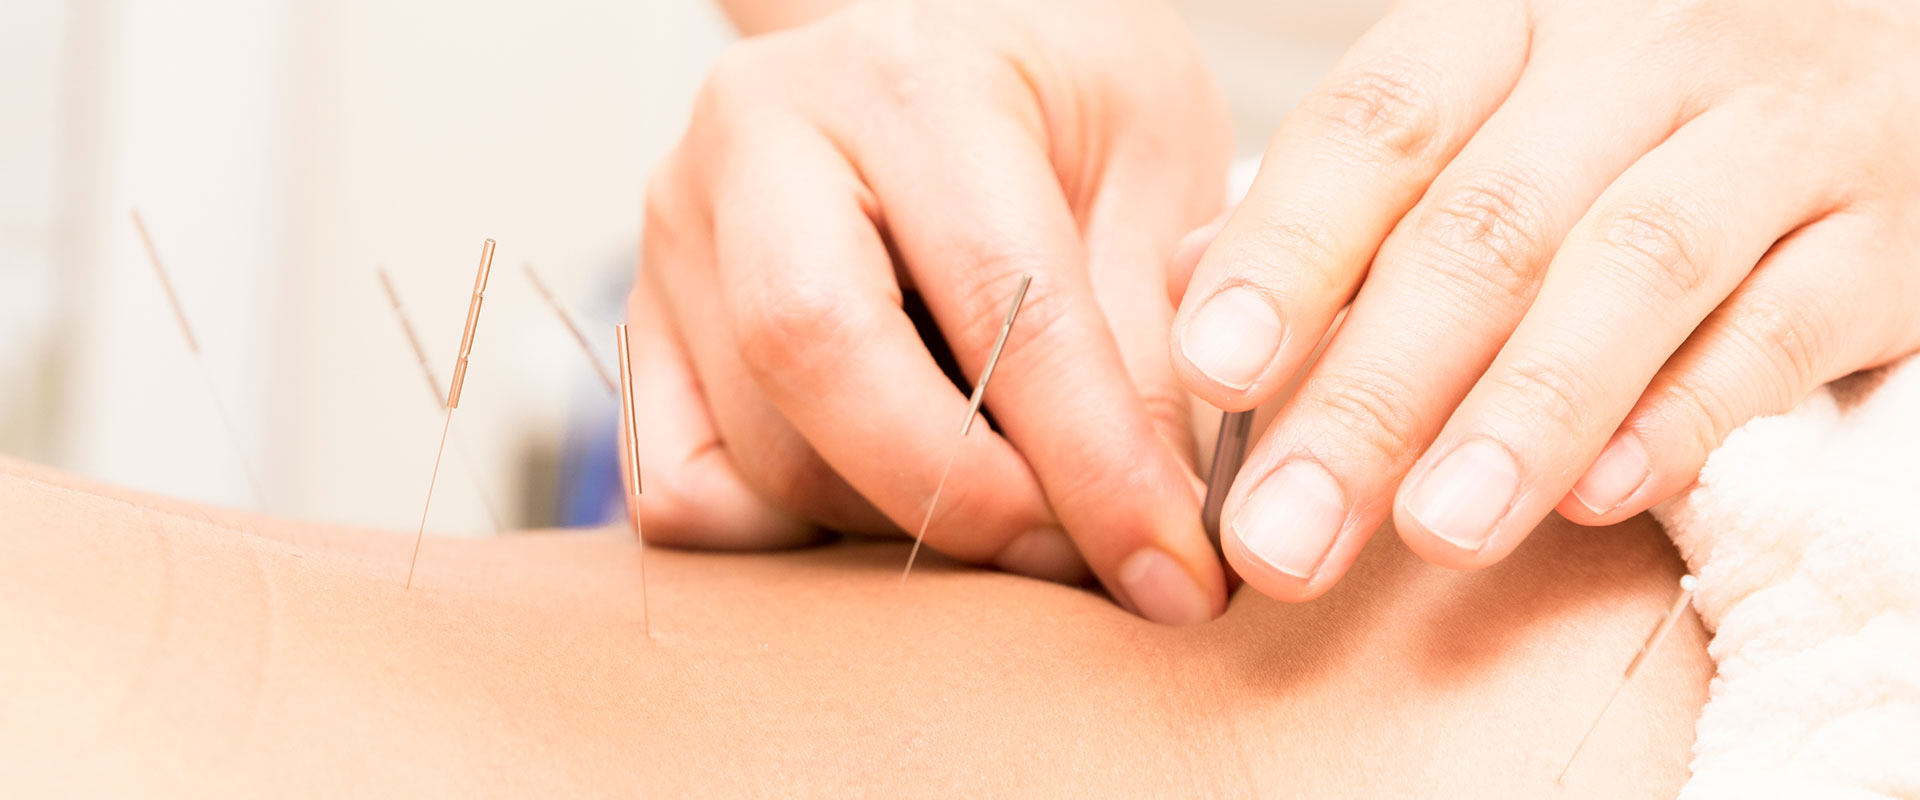 Healing Arts - Acupuncture, Craniosacral Therapy, Cupping, Scar Therapy